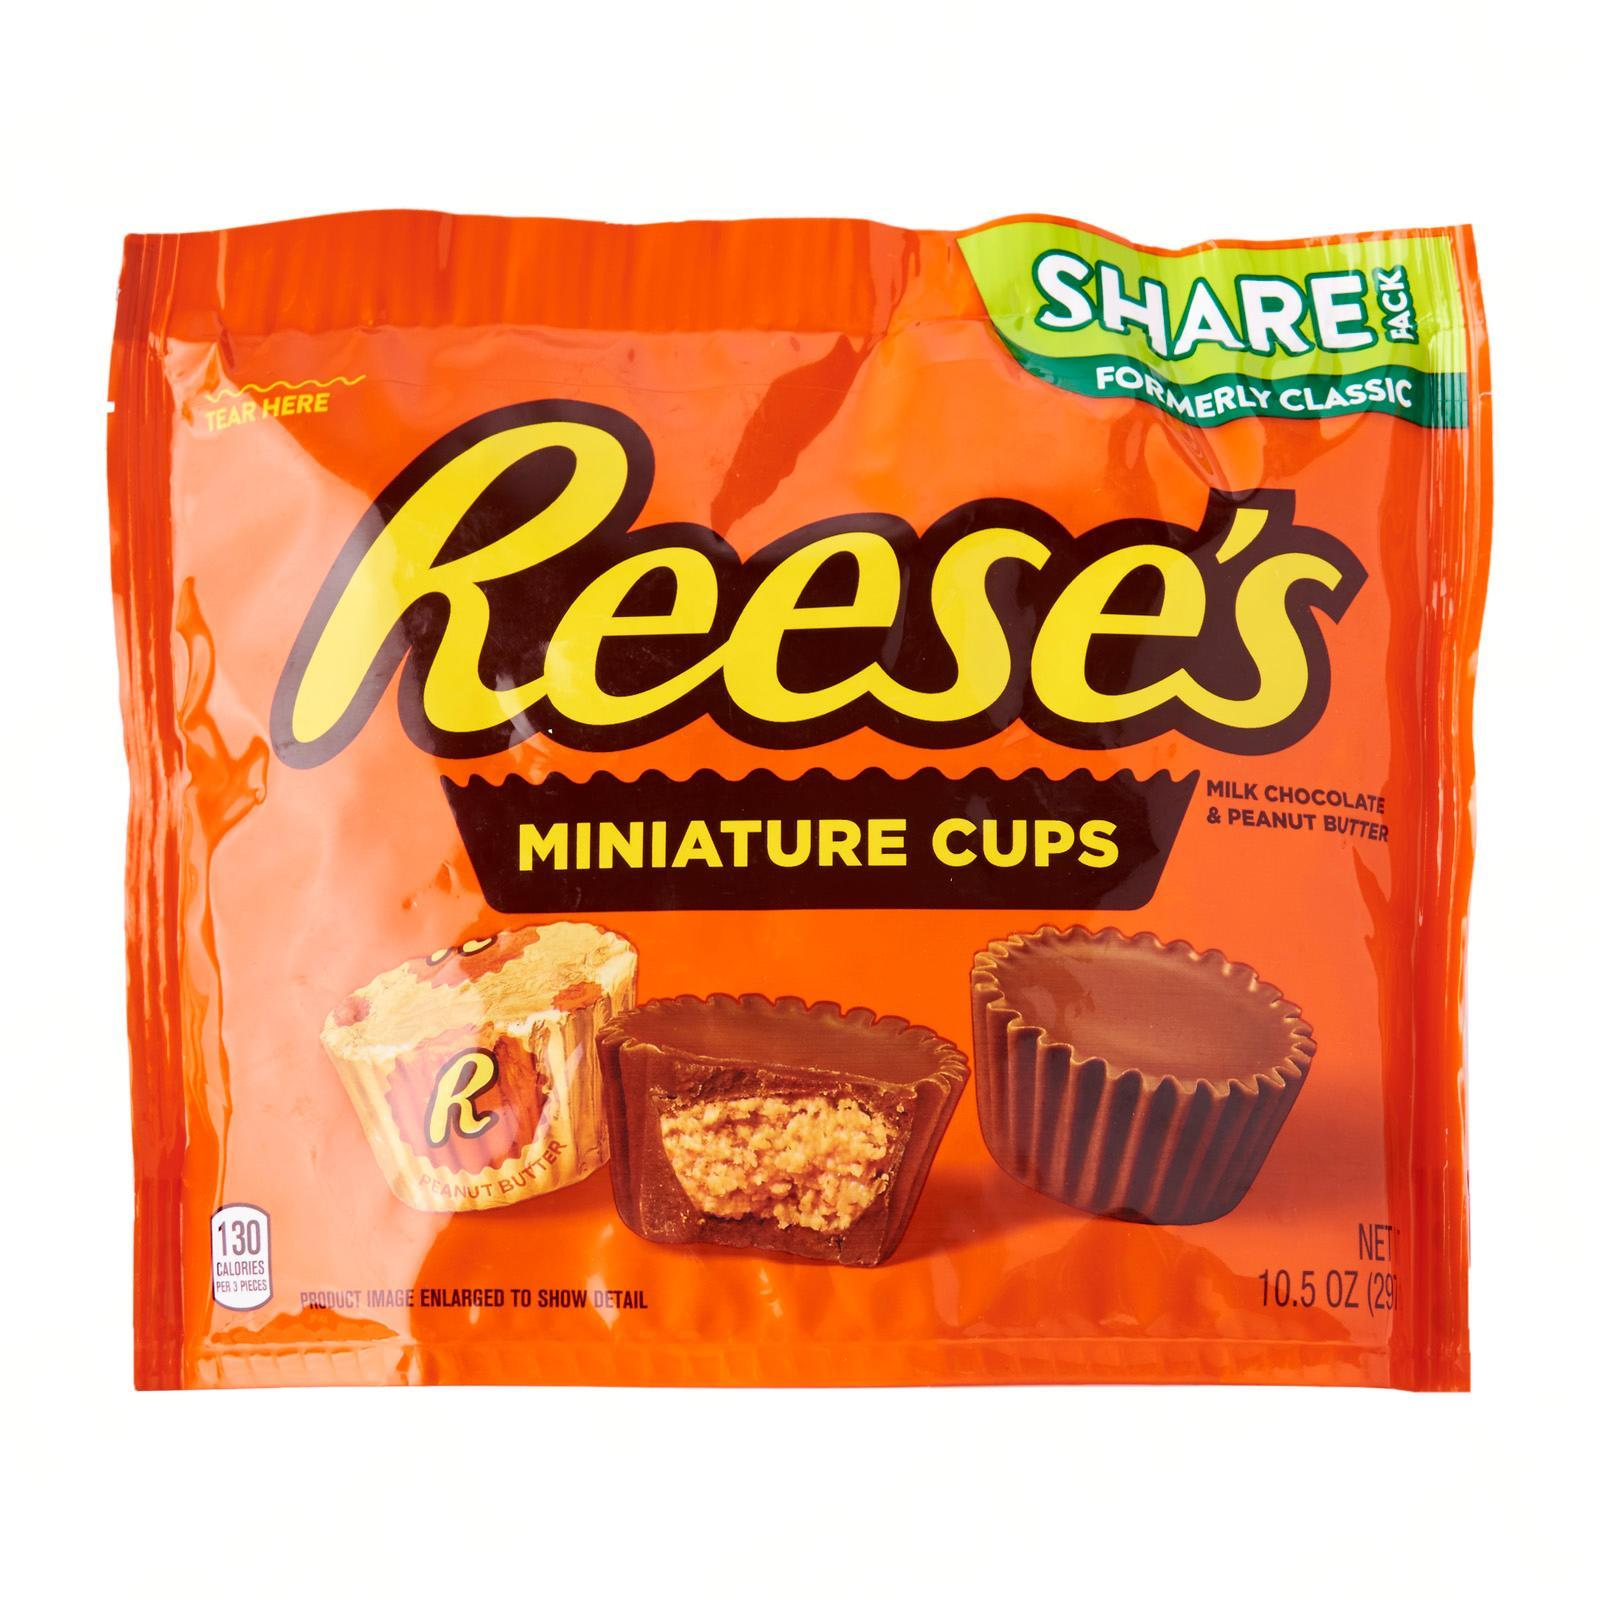 Hershey Reese Peanut Butter Cup Chocolate